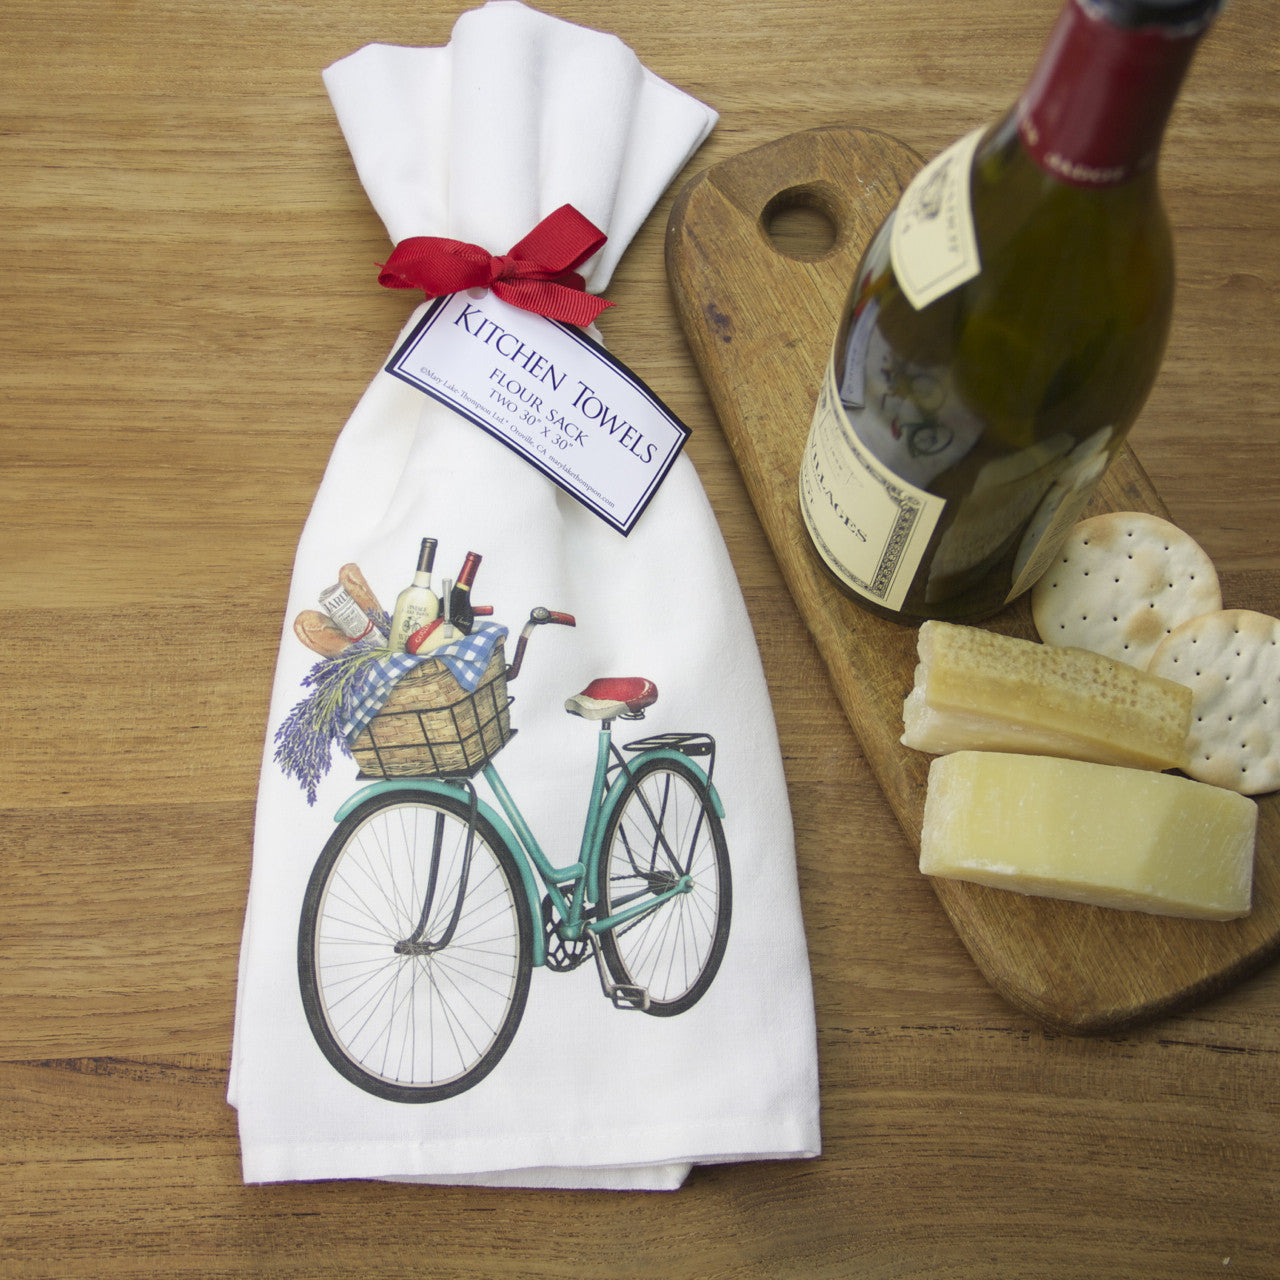 French Market Bicycle Flour Sack Towels